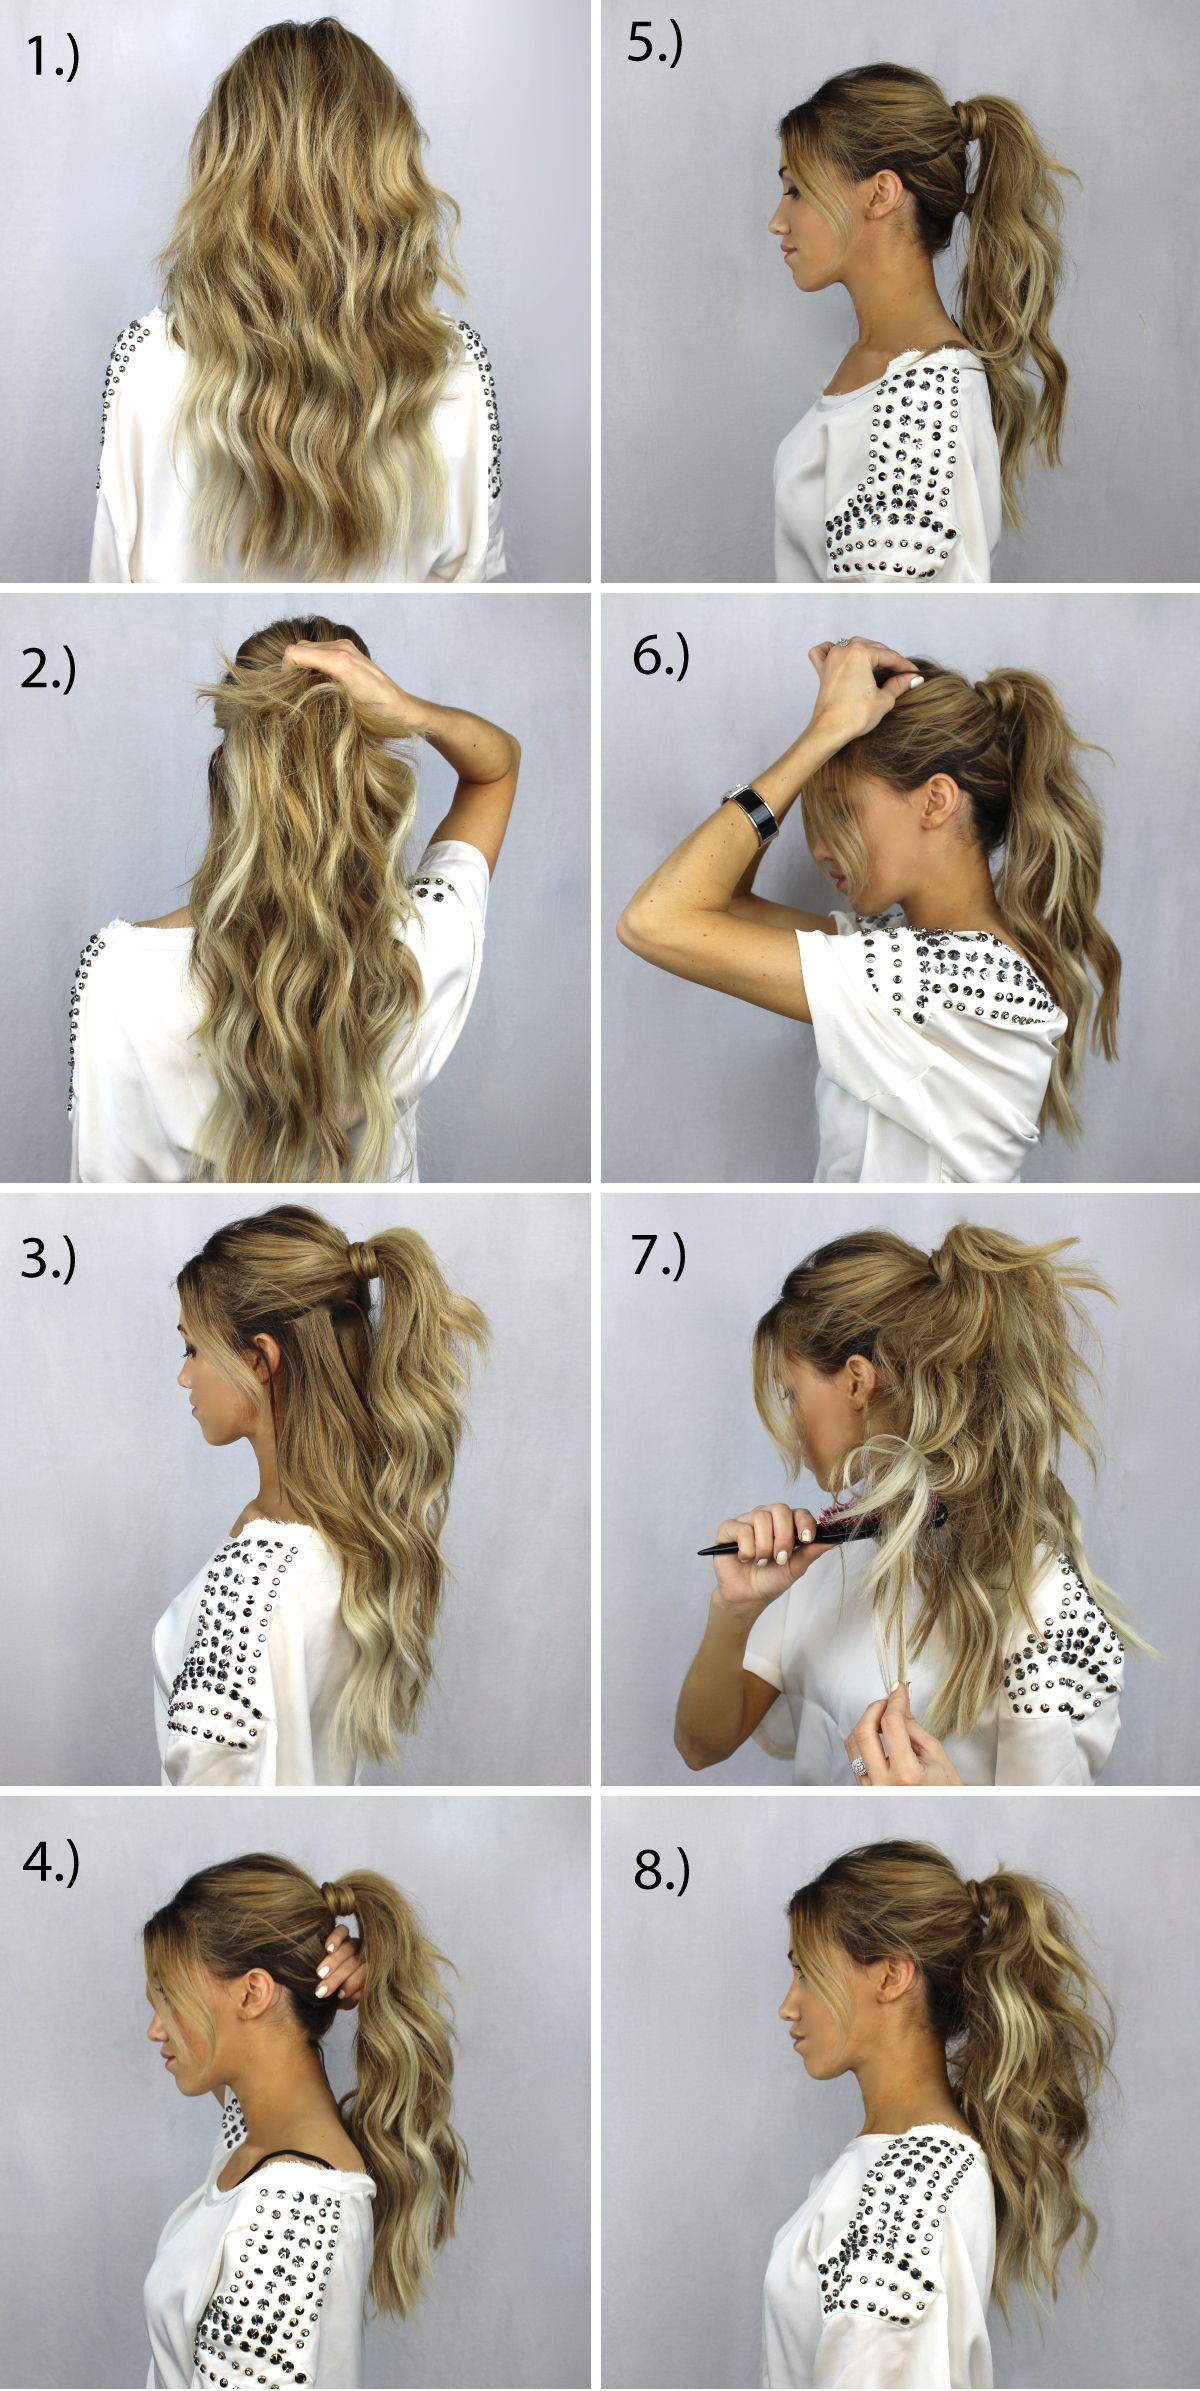 Fake your ponytail Lets see if my hair does this